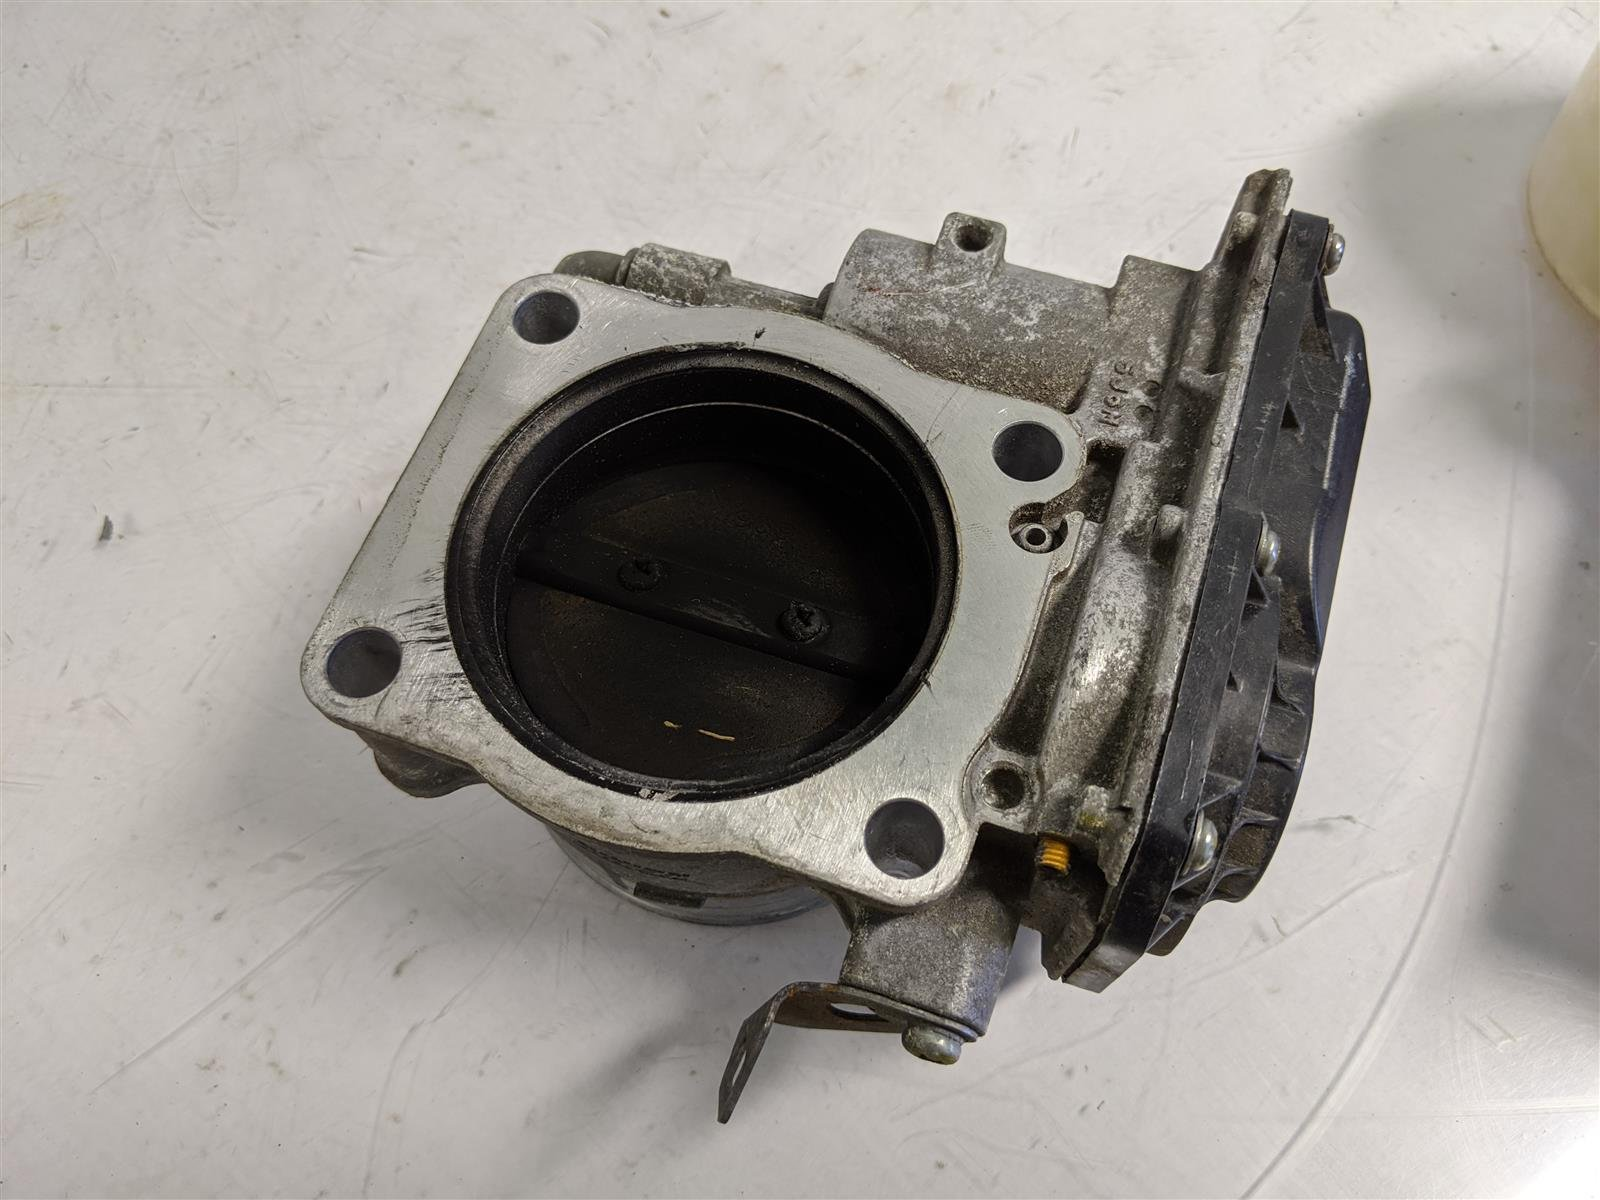 2016 Acura MDX Throttle Body Replacement